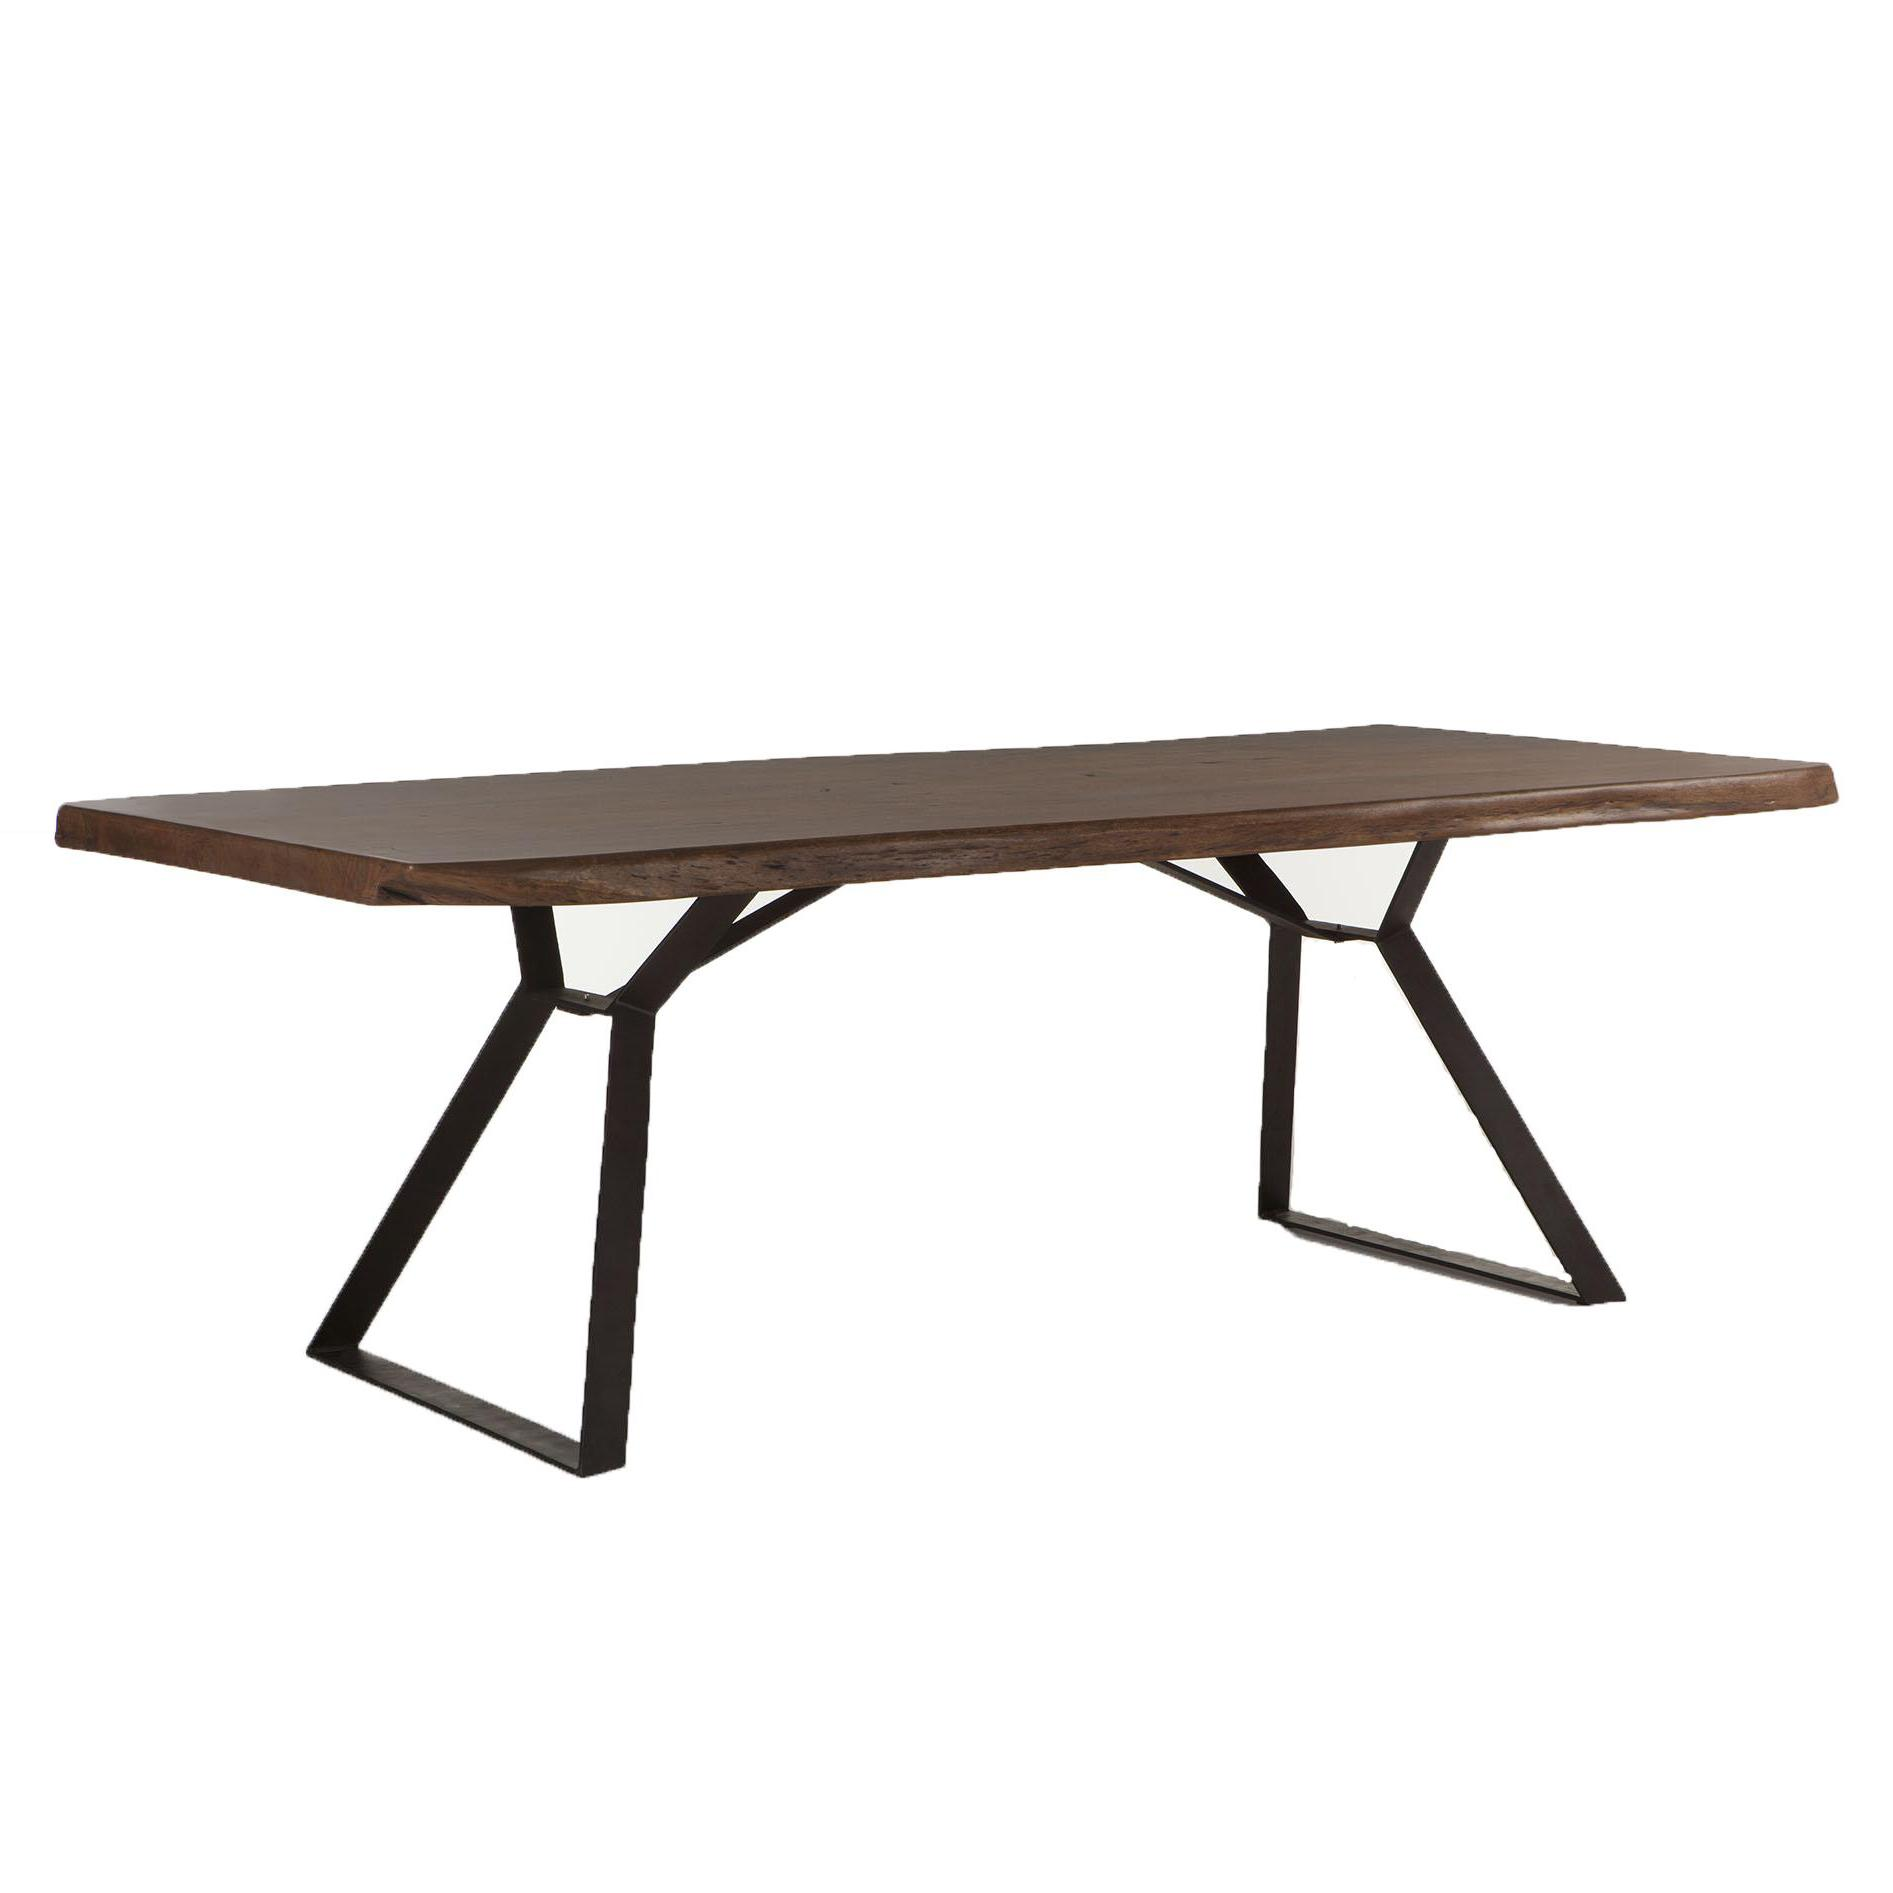 BeGlobal FLL Dining Table - Item Number: FLL-DT94WN-T+B